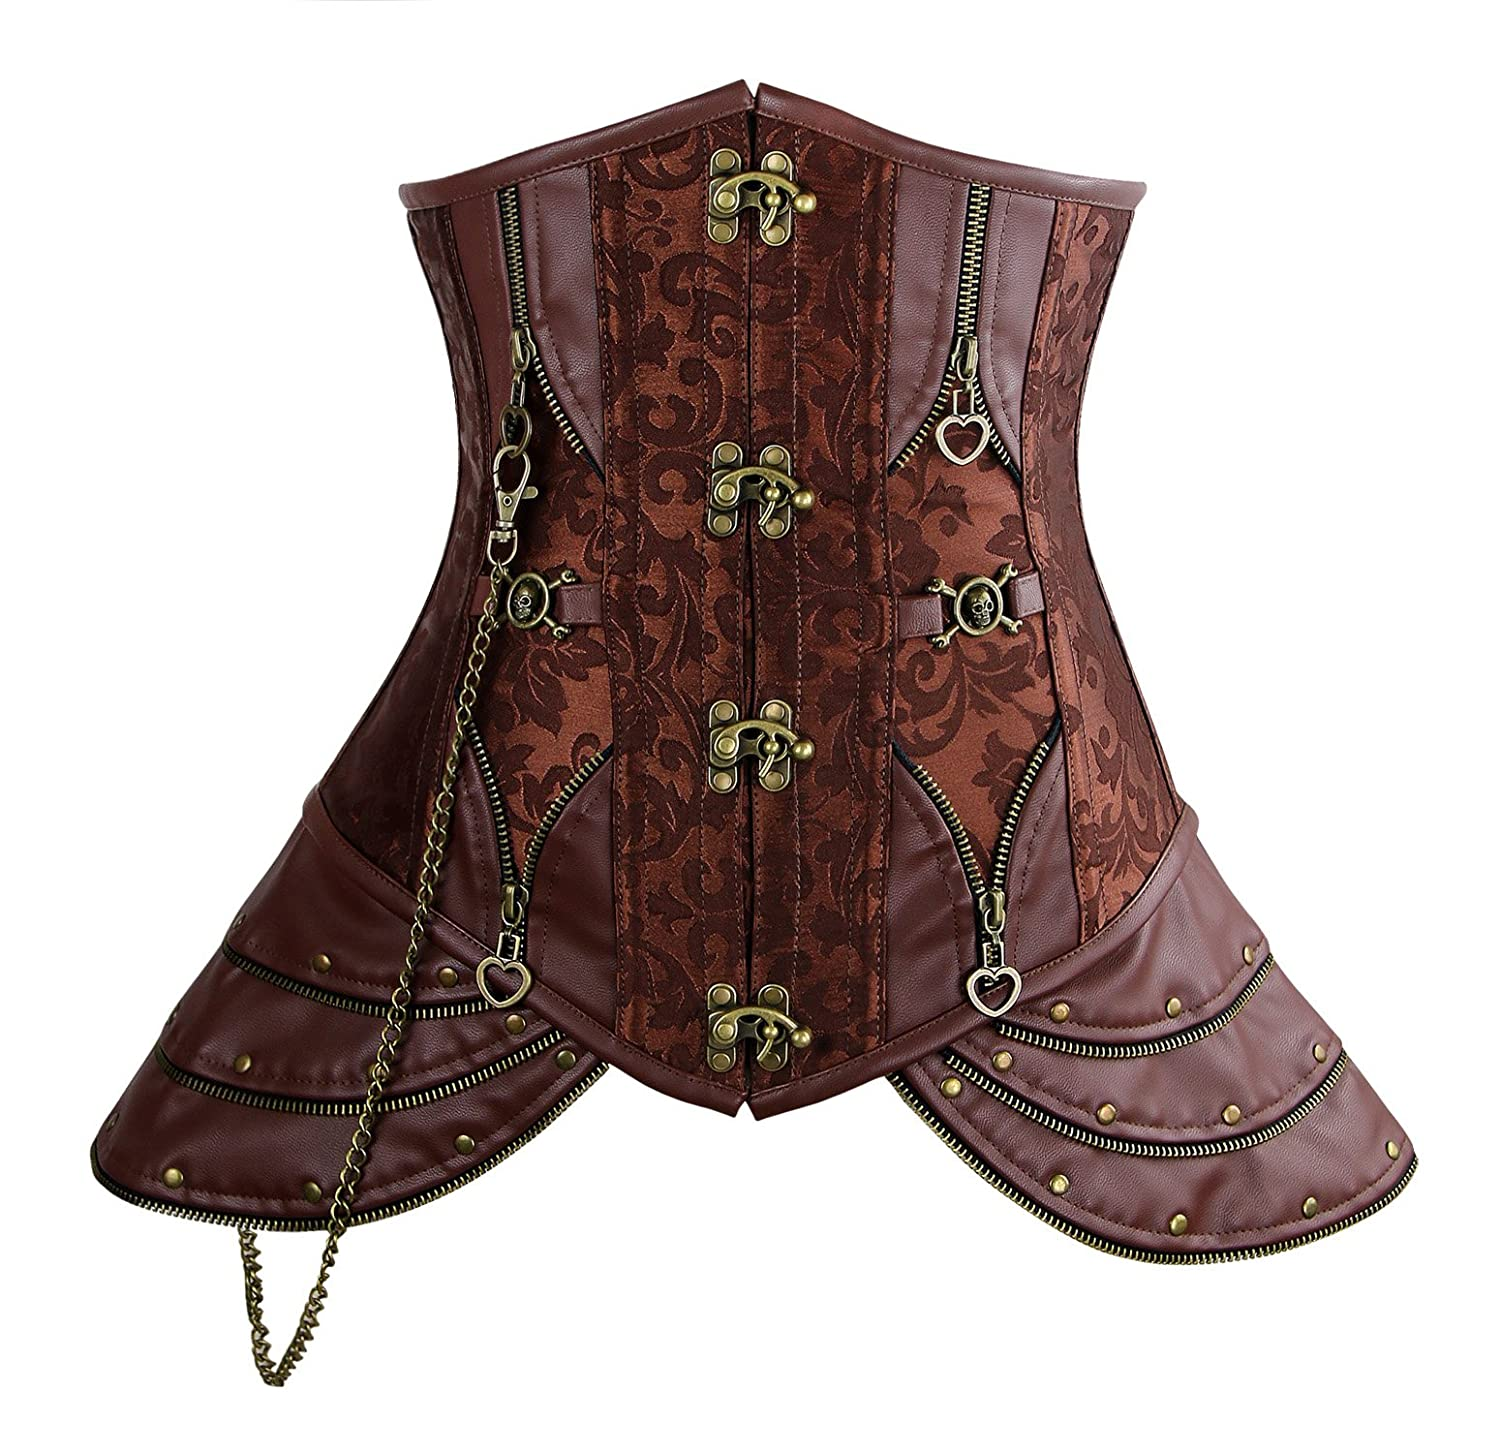 ca72b4aed2 Charmian Women s Steampunk Brocade Steel Boned Underbust Corset with Hip  Panels at Amazon Women s Clothing store